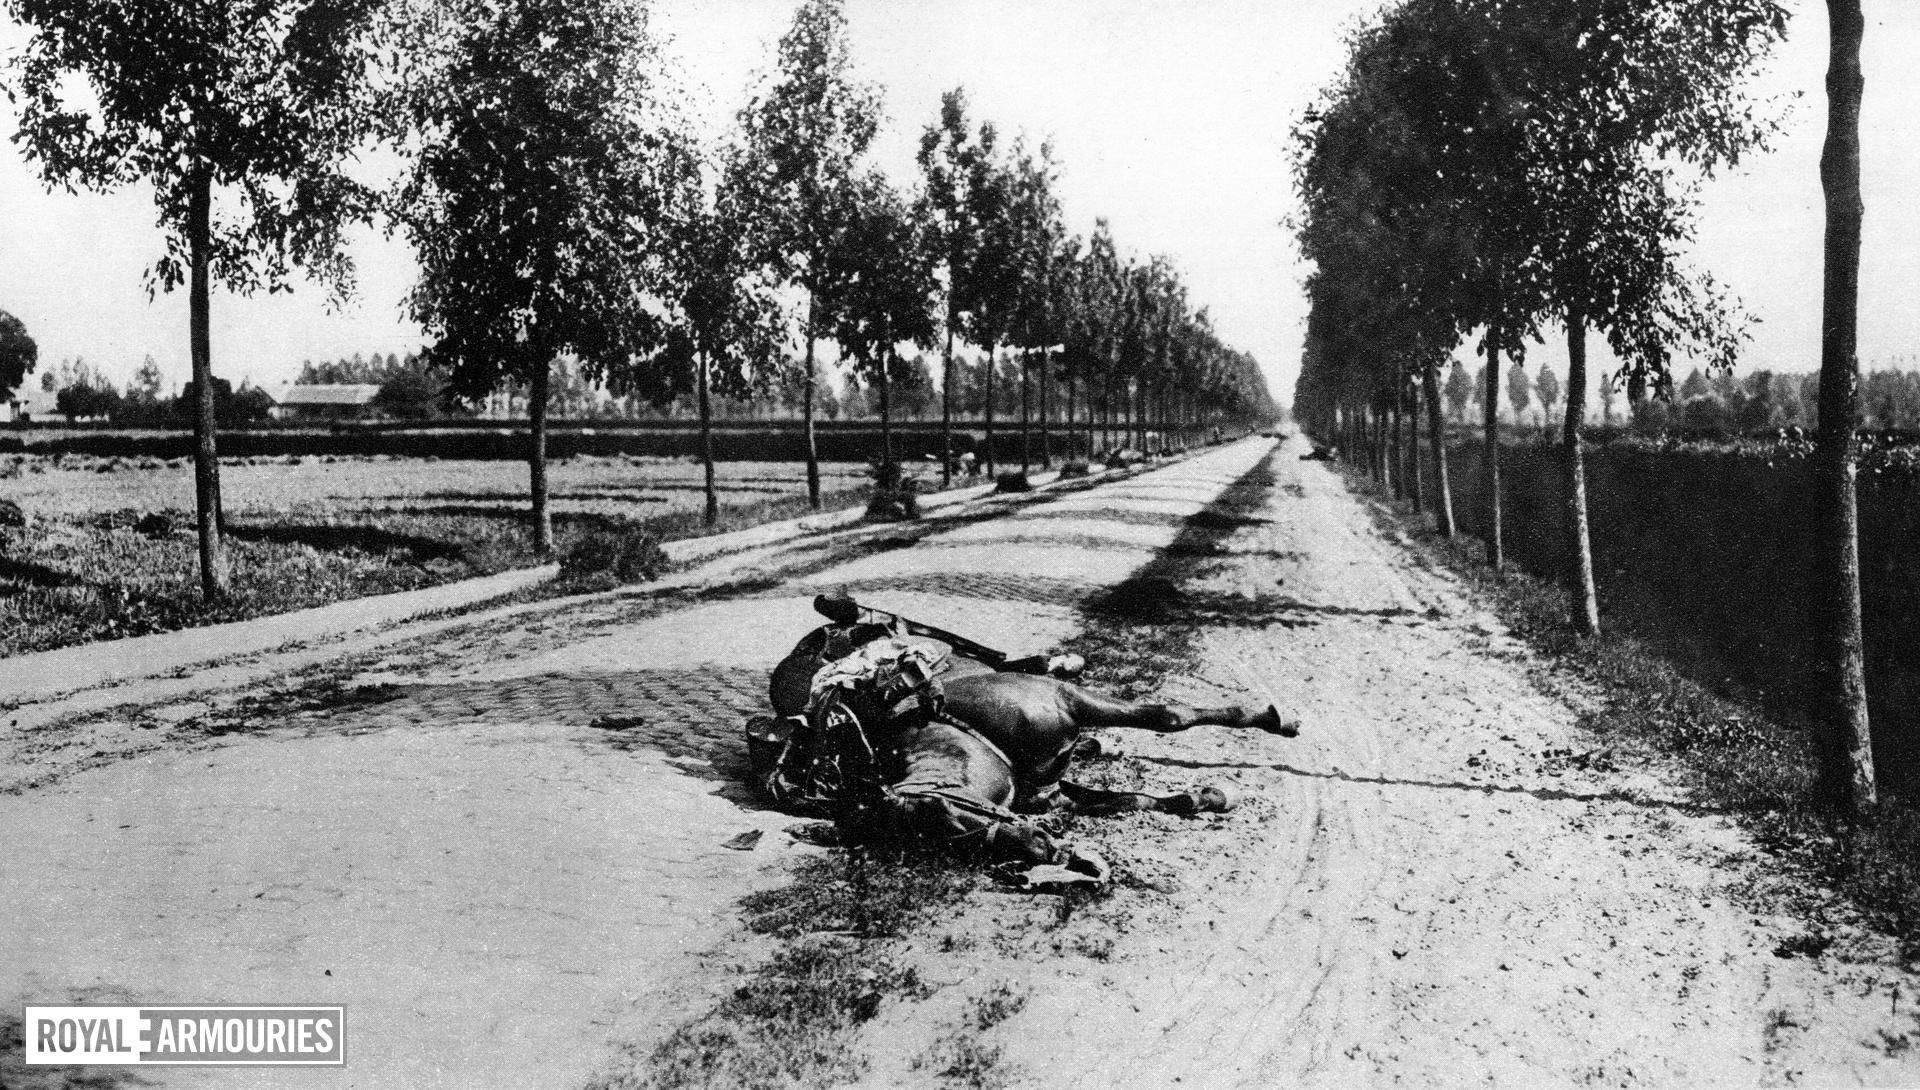 The aftermath of the Battle of Haelen, 12 August 1914 Four German cavalry regiments charged a smaller force of dismounted Belgian cavalry with rifles, artillery and partly protected by wire: it was a costly failure